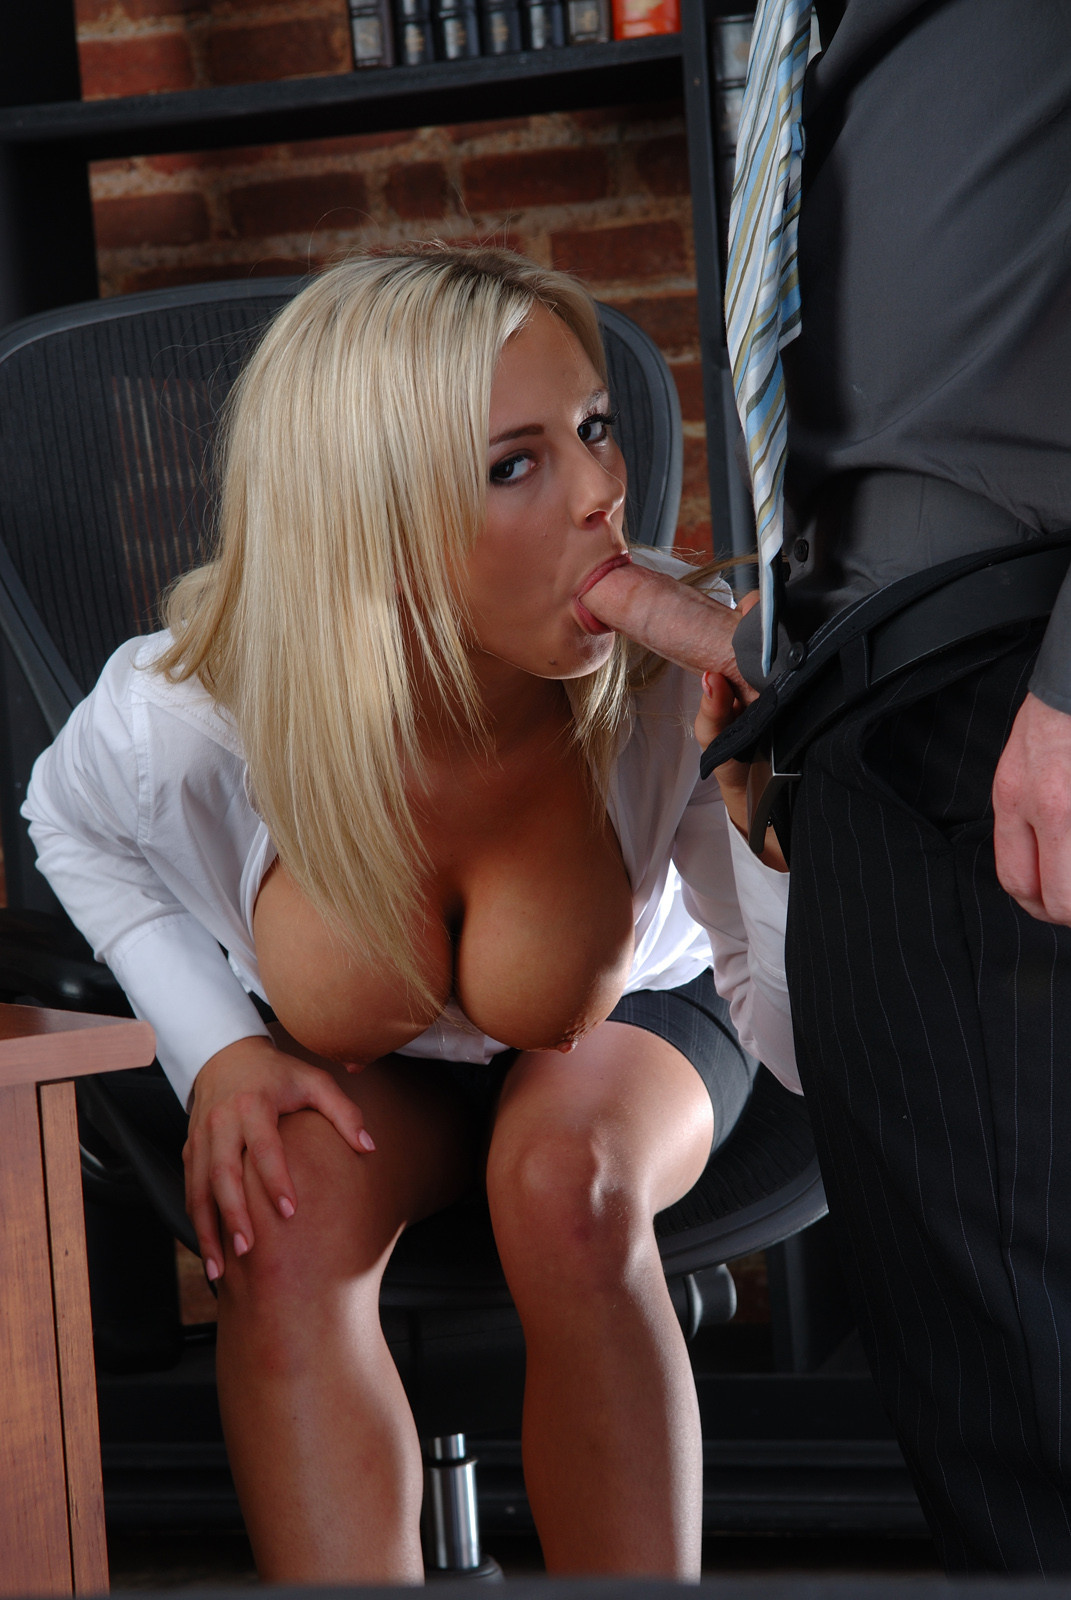 Girl In Skirts Masturbate In Dad's Office While He's Away